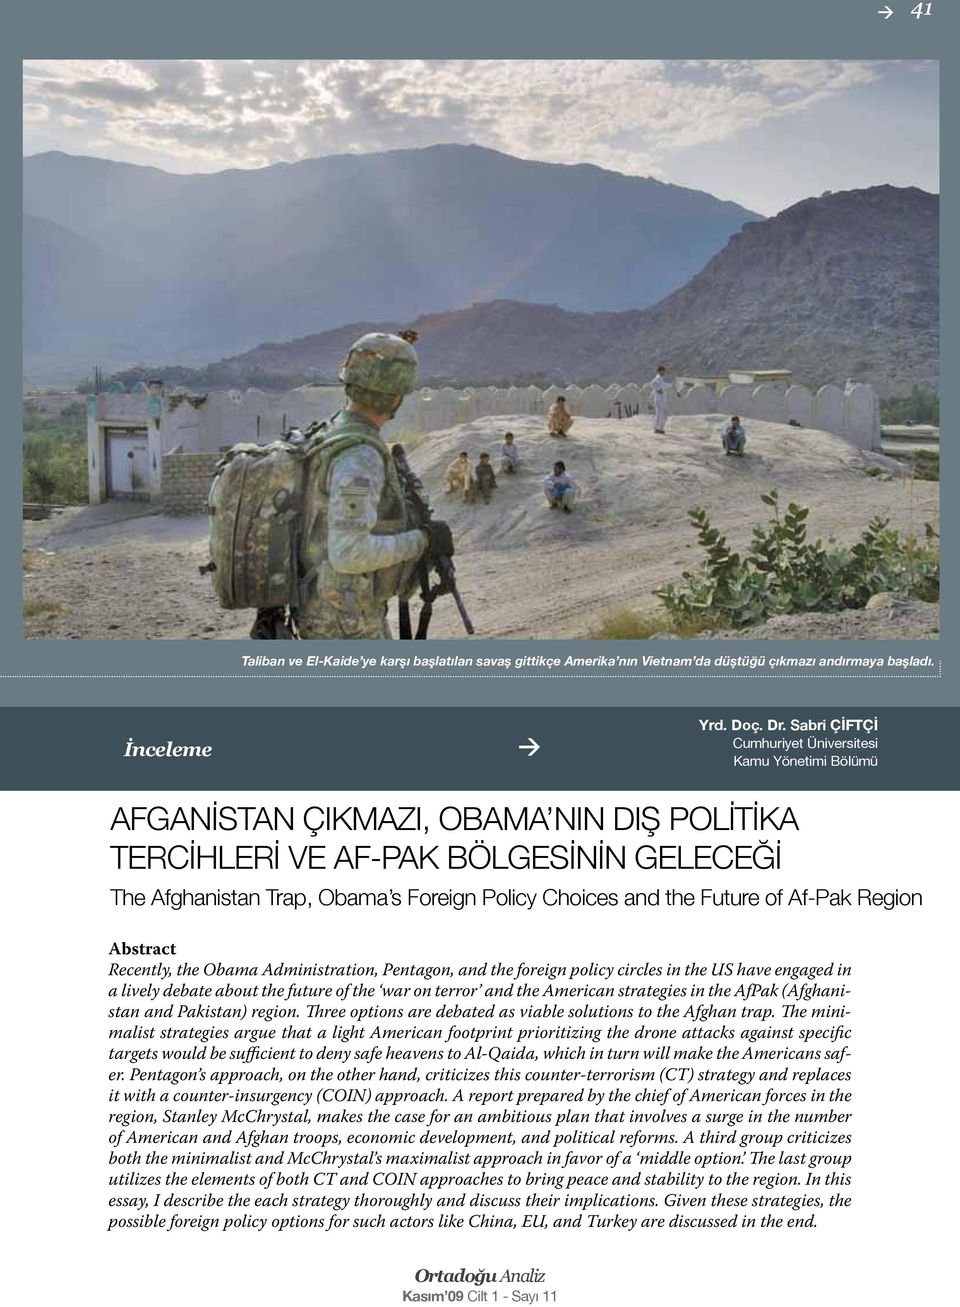 the Future of Af-Pak Region Abstract Recently, the Obama Administration, Pentagon, and the foreign policy circles in the US have engaged in a lively debate about the future of the war on terror and